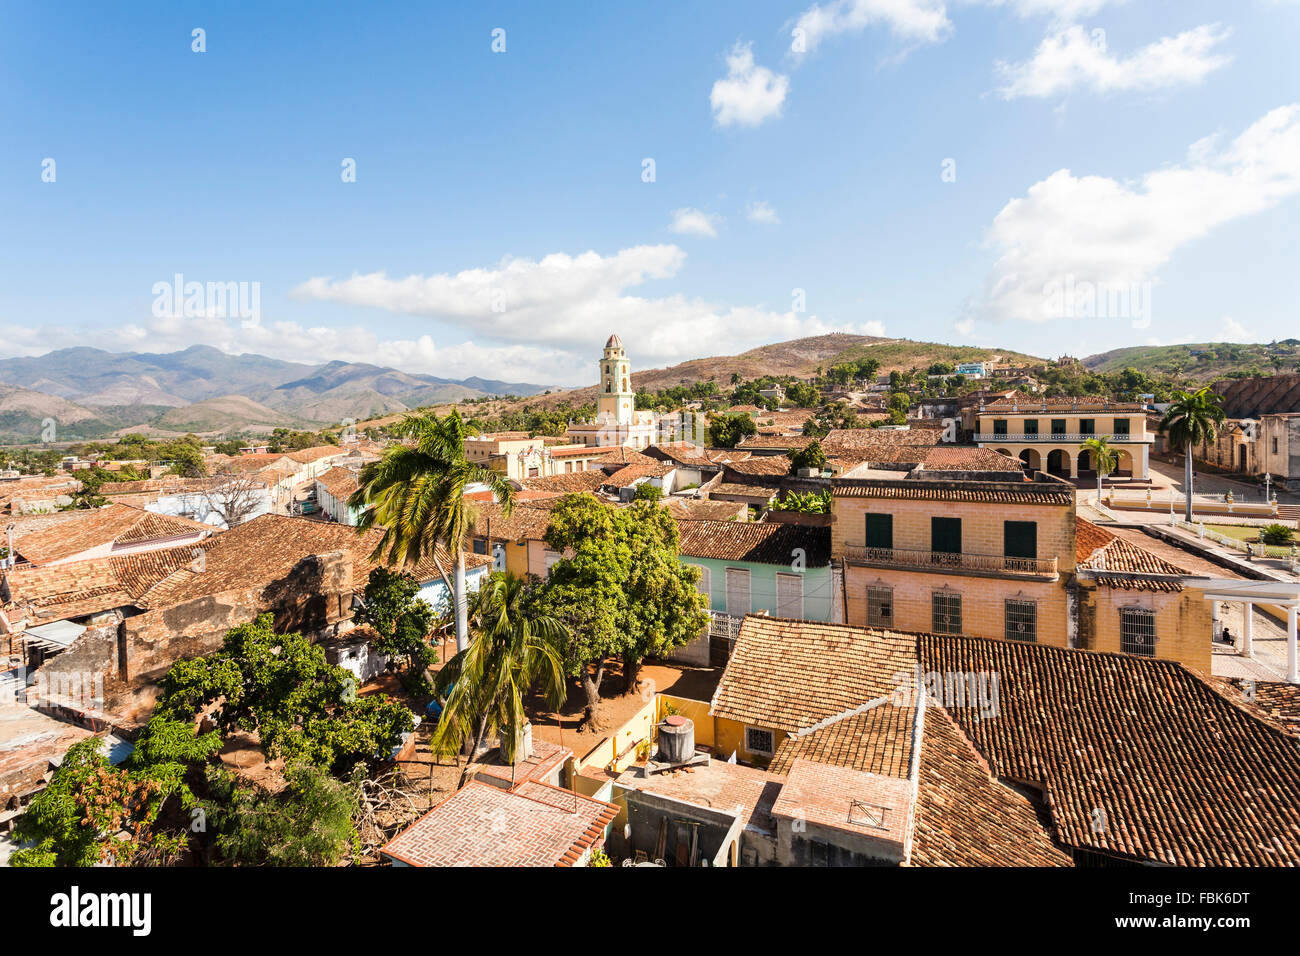 Panoramic rooftop view over Trinidad, Cuba with Iglesia Parroquial de la Santísima (Church of the Holy Trinity) - Stock Image